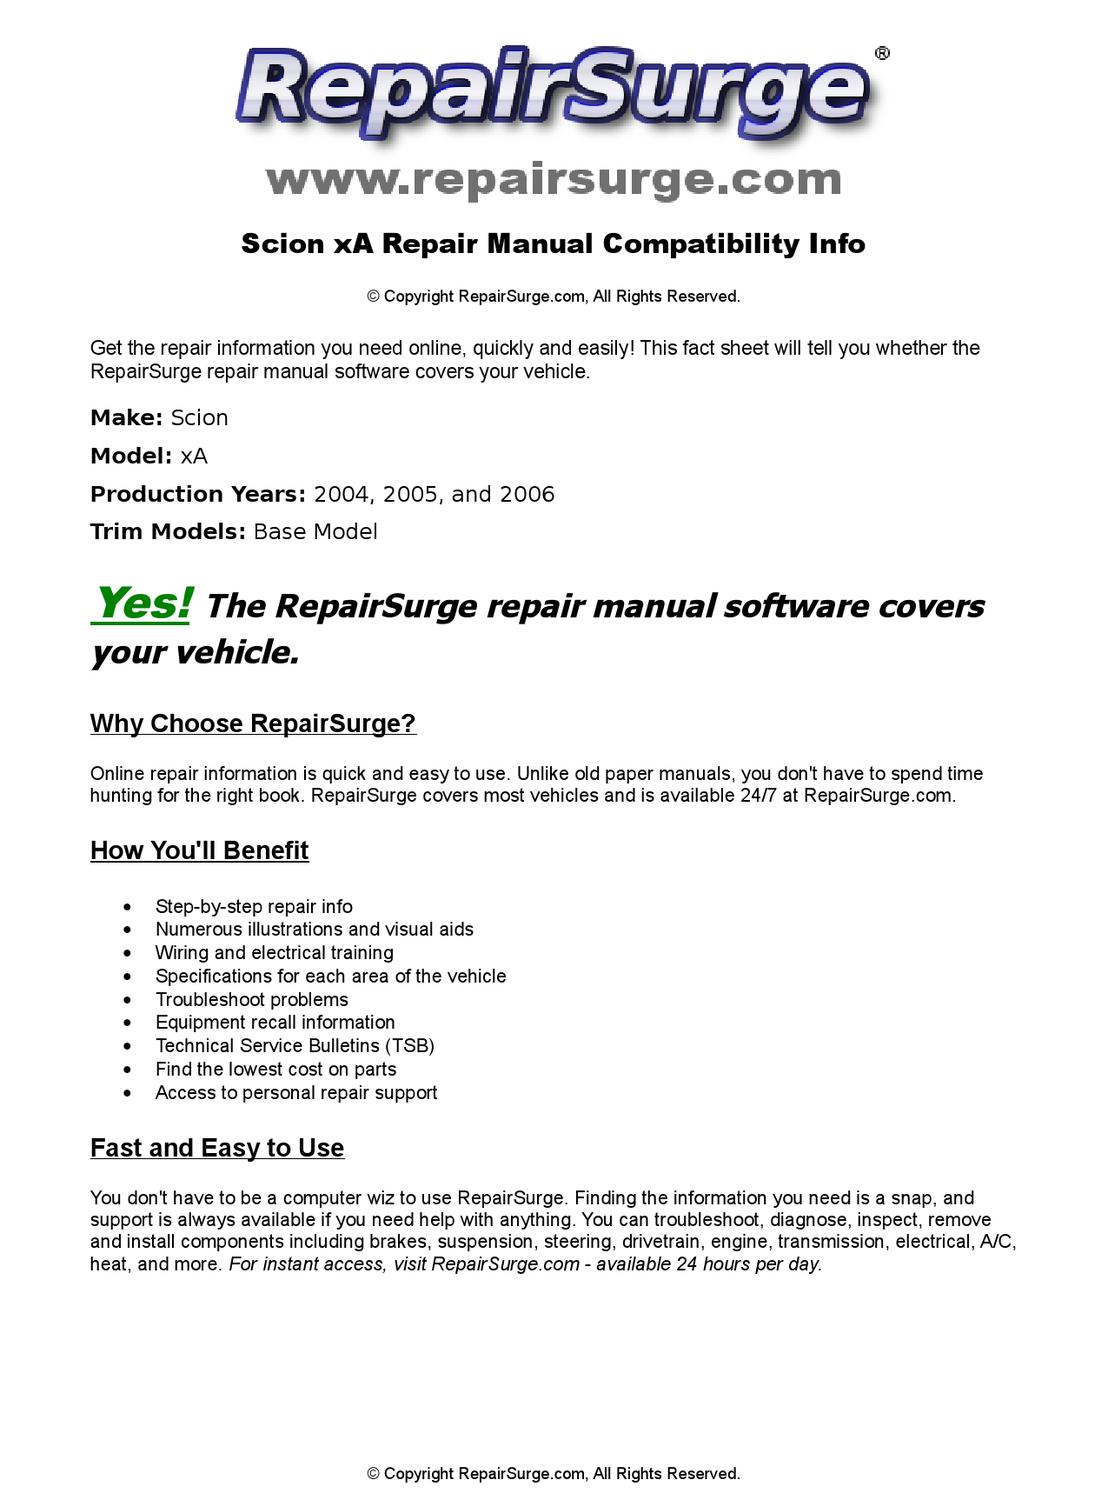 scion xa online repair manual for 2004 2005 and 2006 by. Black Bedroom Furniture Sets. Home Design Ideas